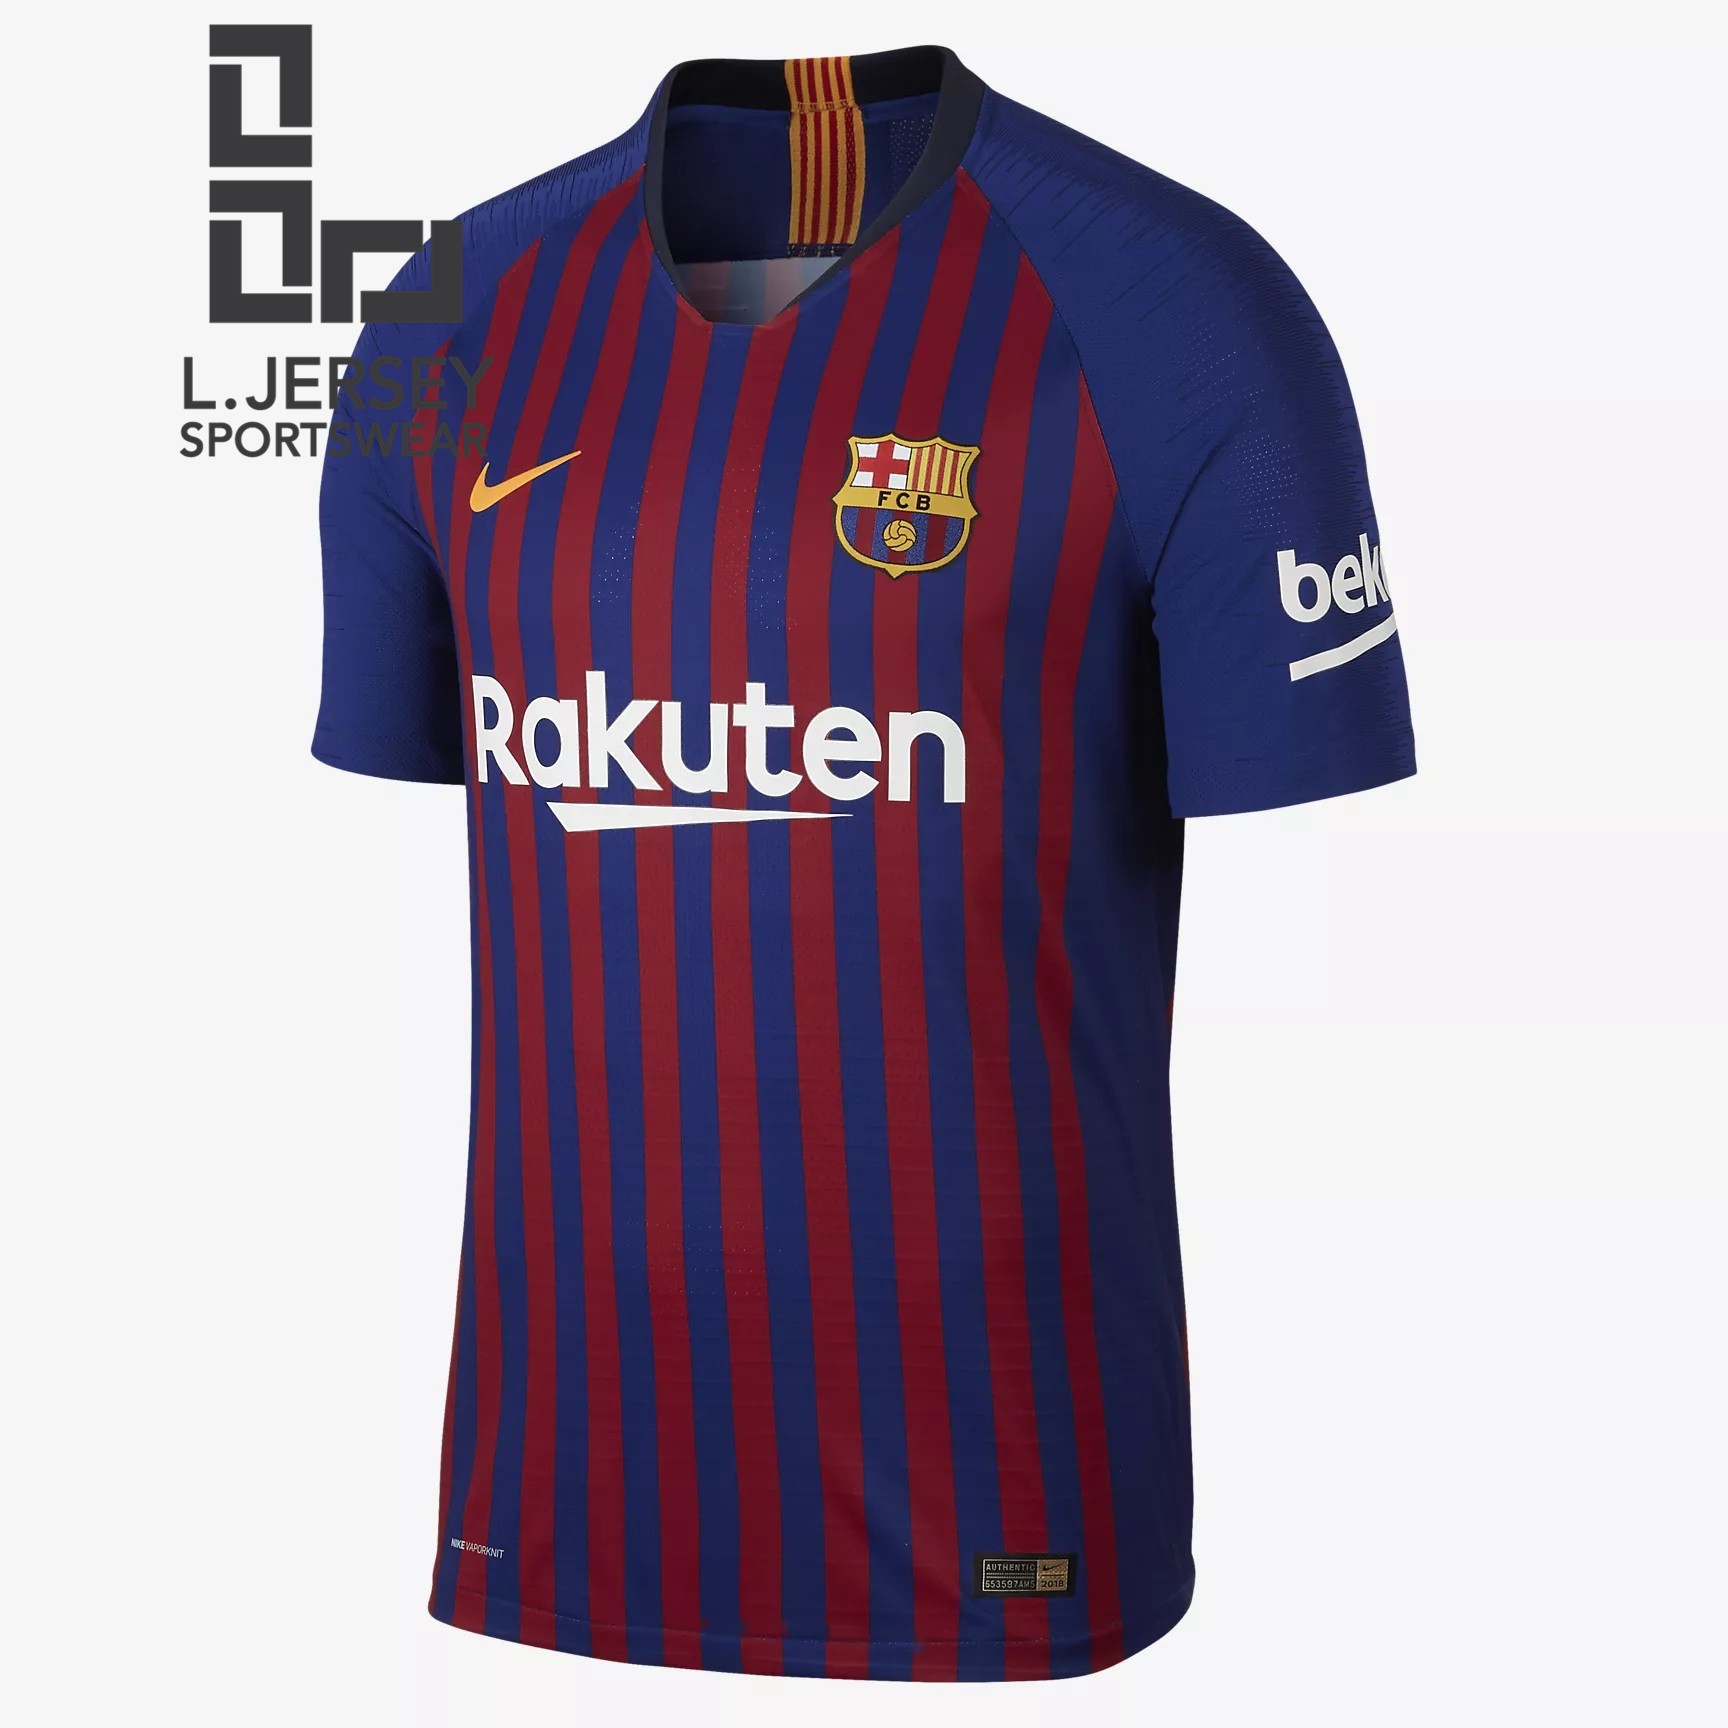 size 40 73a0e 94897 Barcelona Men Home 2018/19 Vaporknit Player Jersey